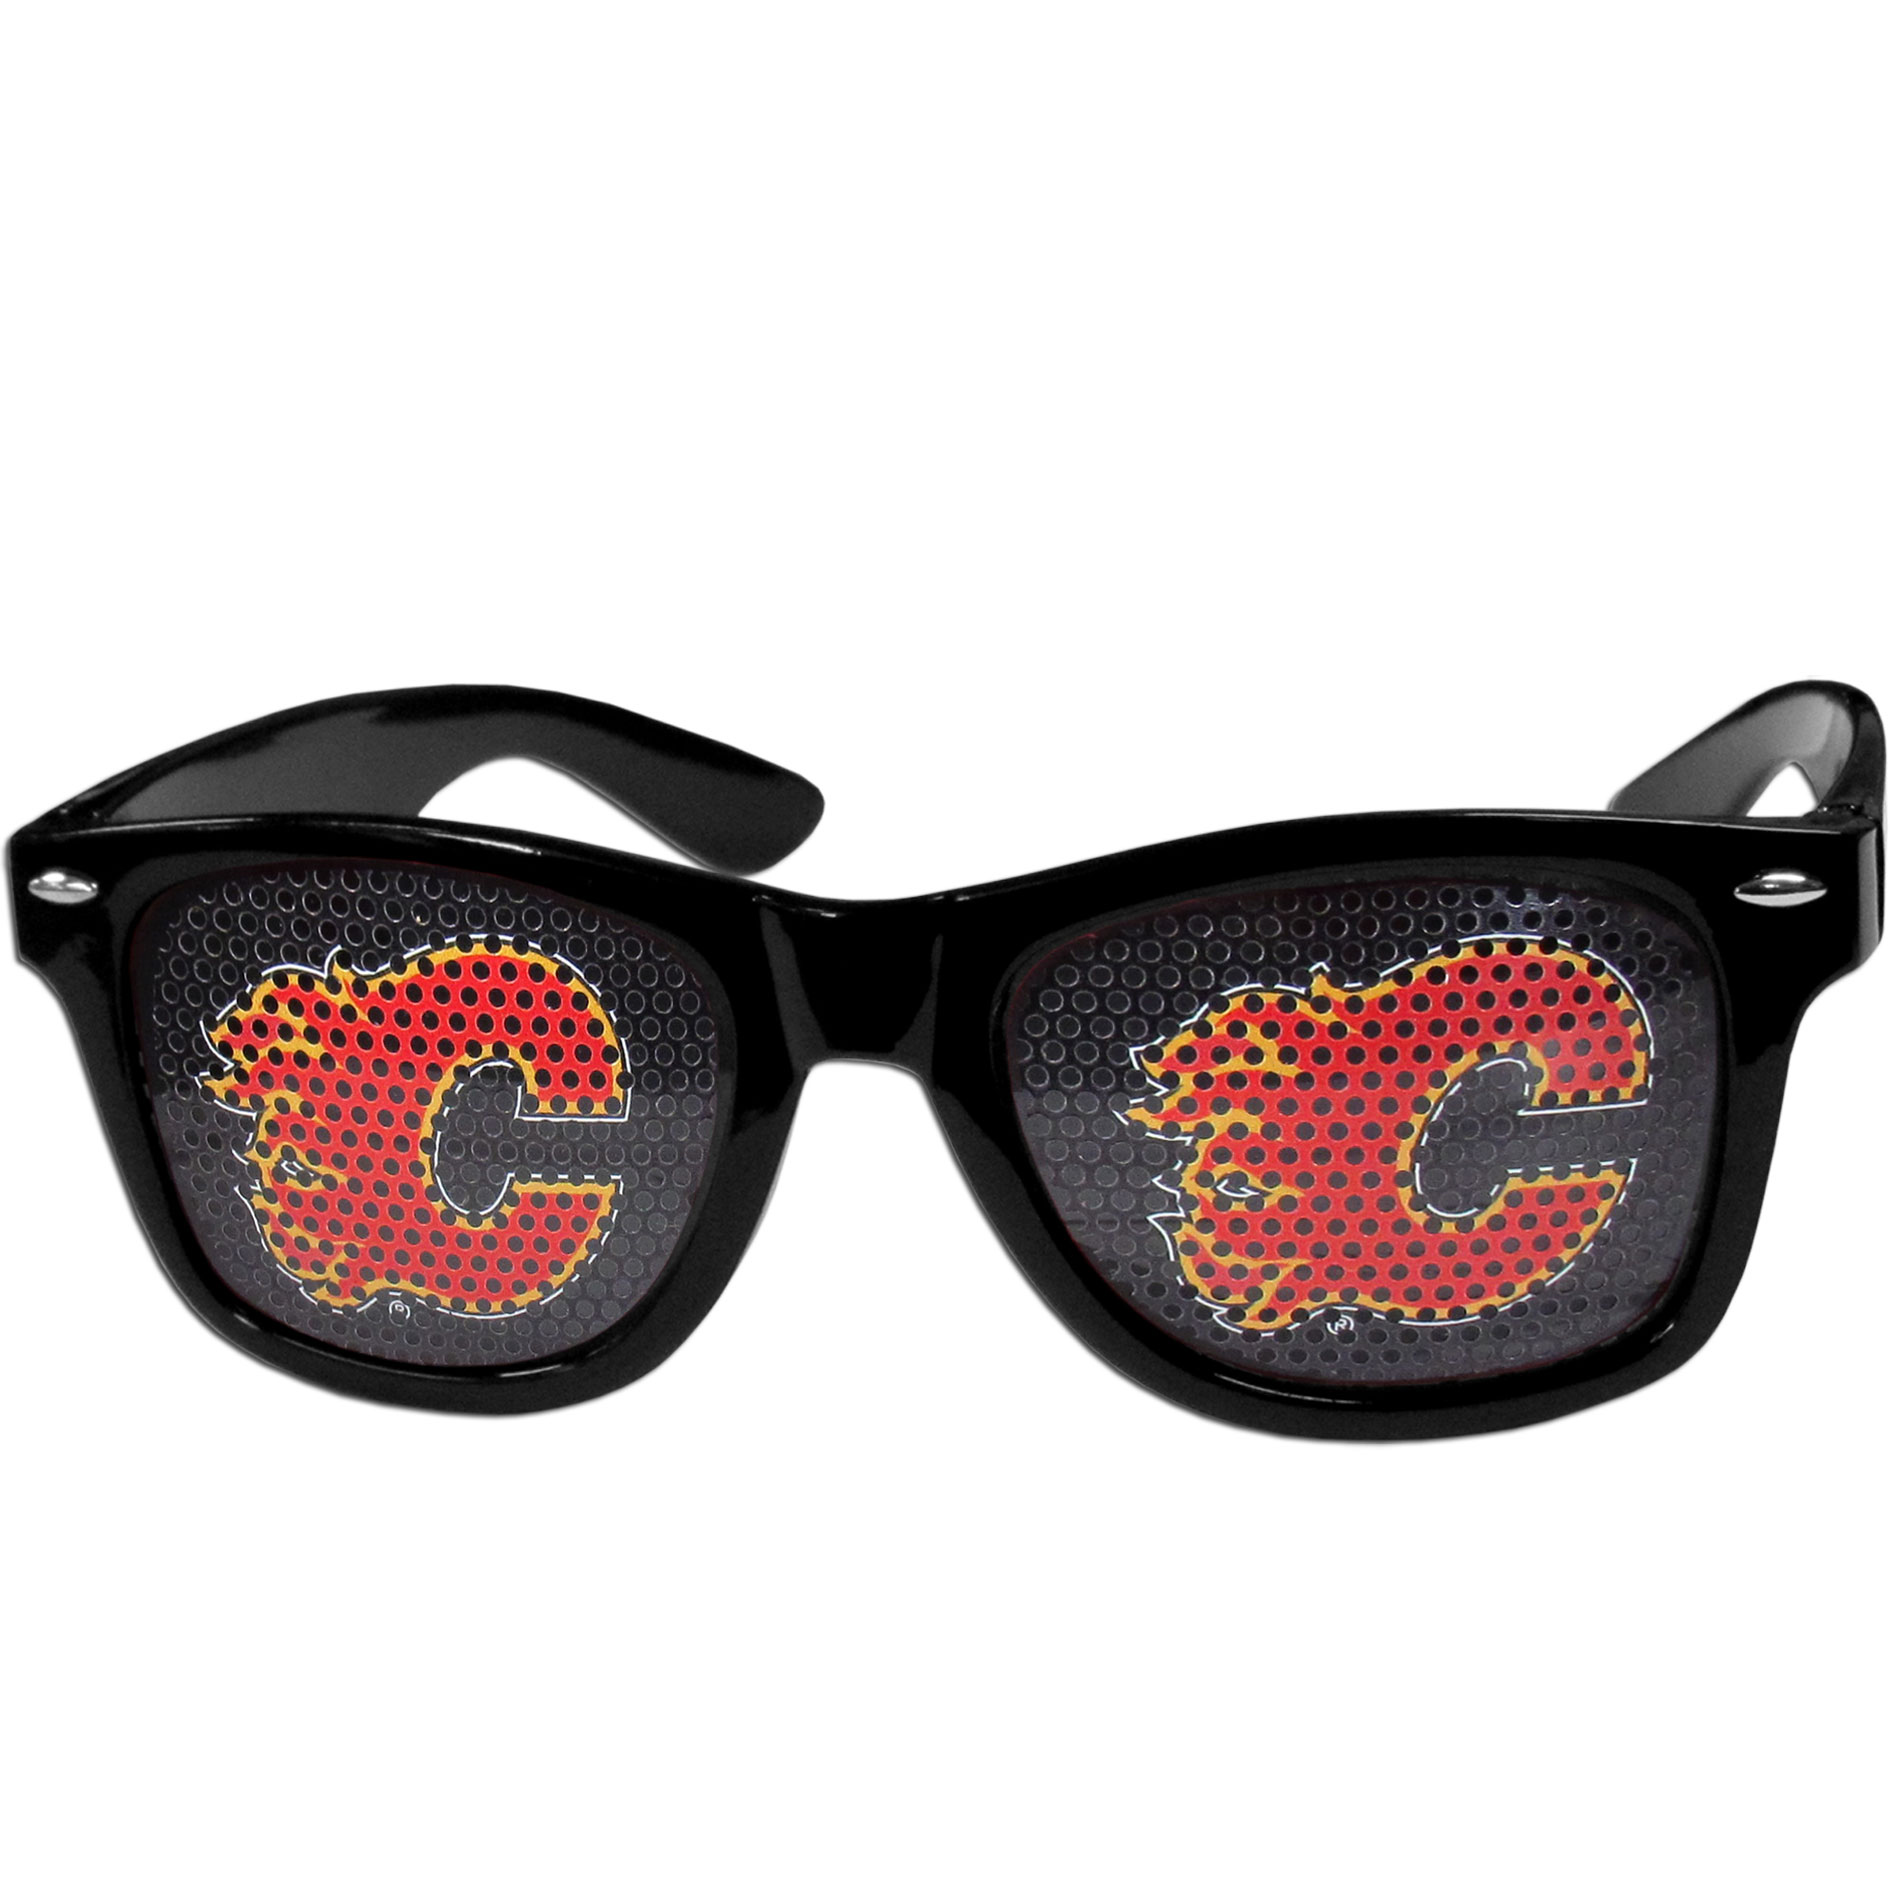 Calgary Flames Game Day Shades - Officially licensed Calgary Flames game day shades are the perfect accessory for the devoted Calgary Flames fan! The Calgary Flames game day shades have durable polycarbonate frames with flex hinges for comfort and damage resistance. The lenses feature brightly colored Calgary Flames clings that are perforated for visibility. Thank you for visiting CrazedOutSports